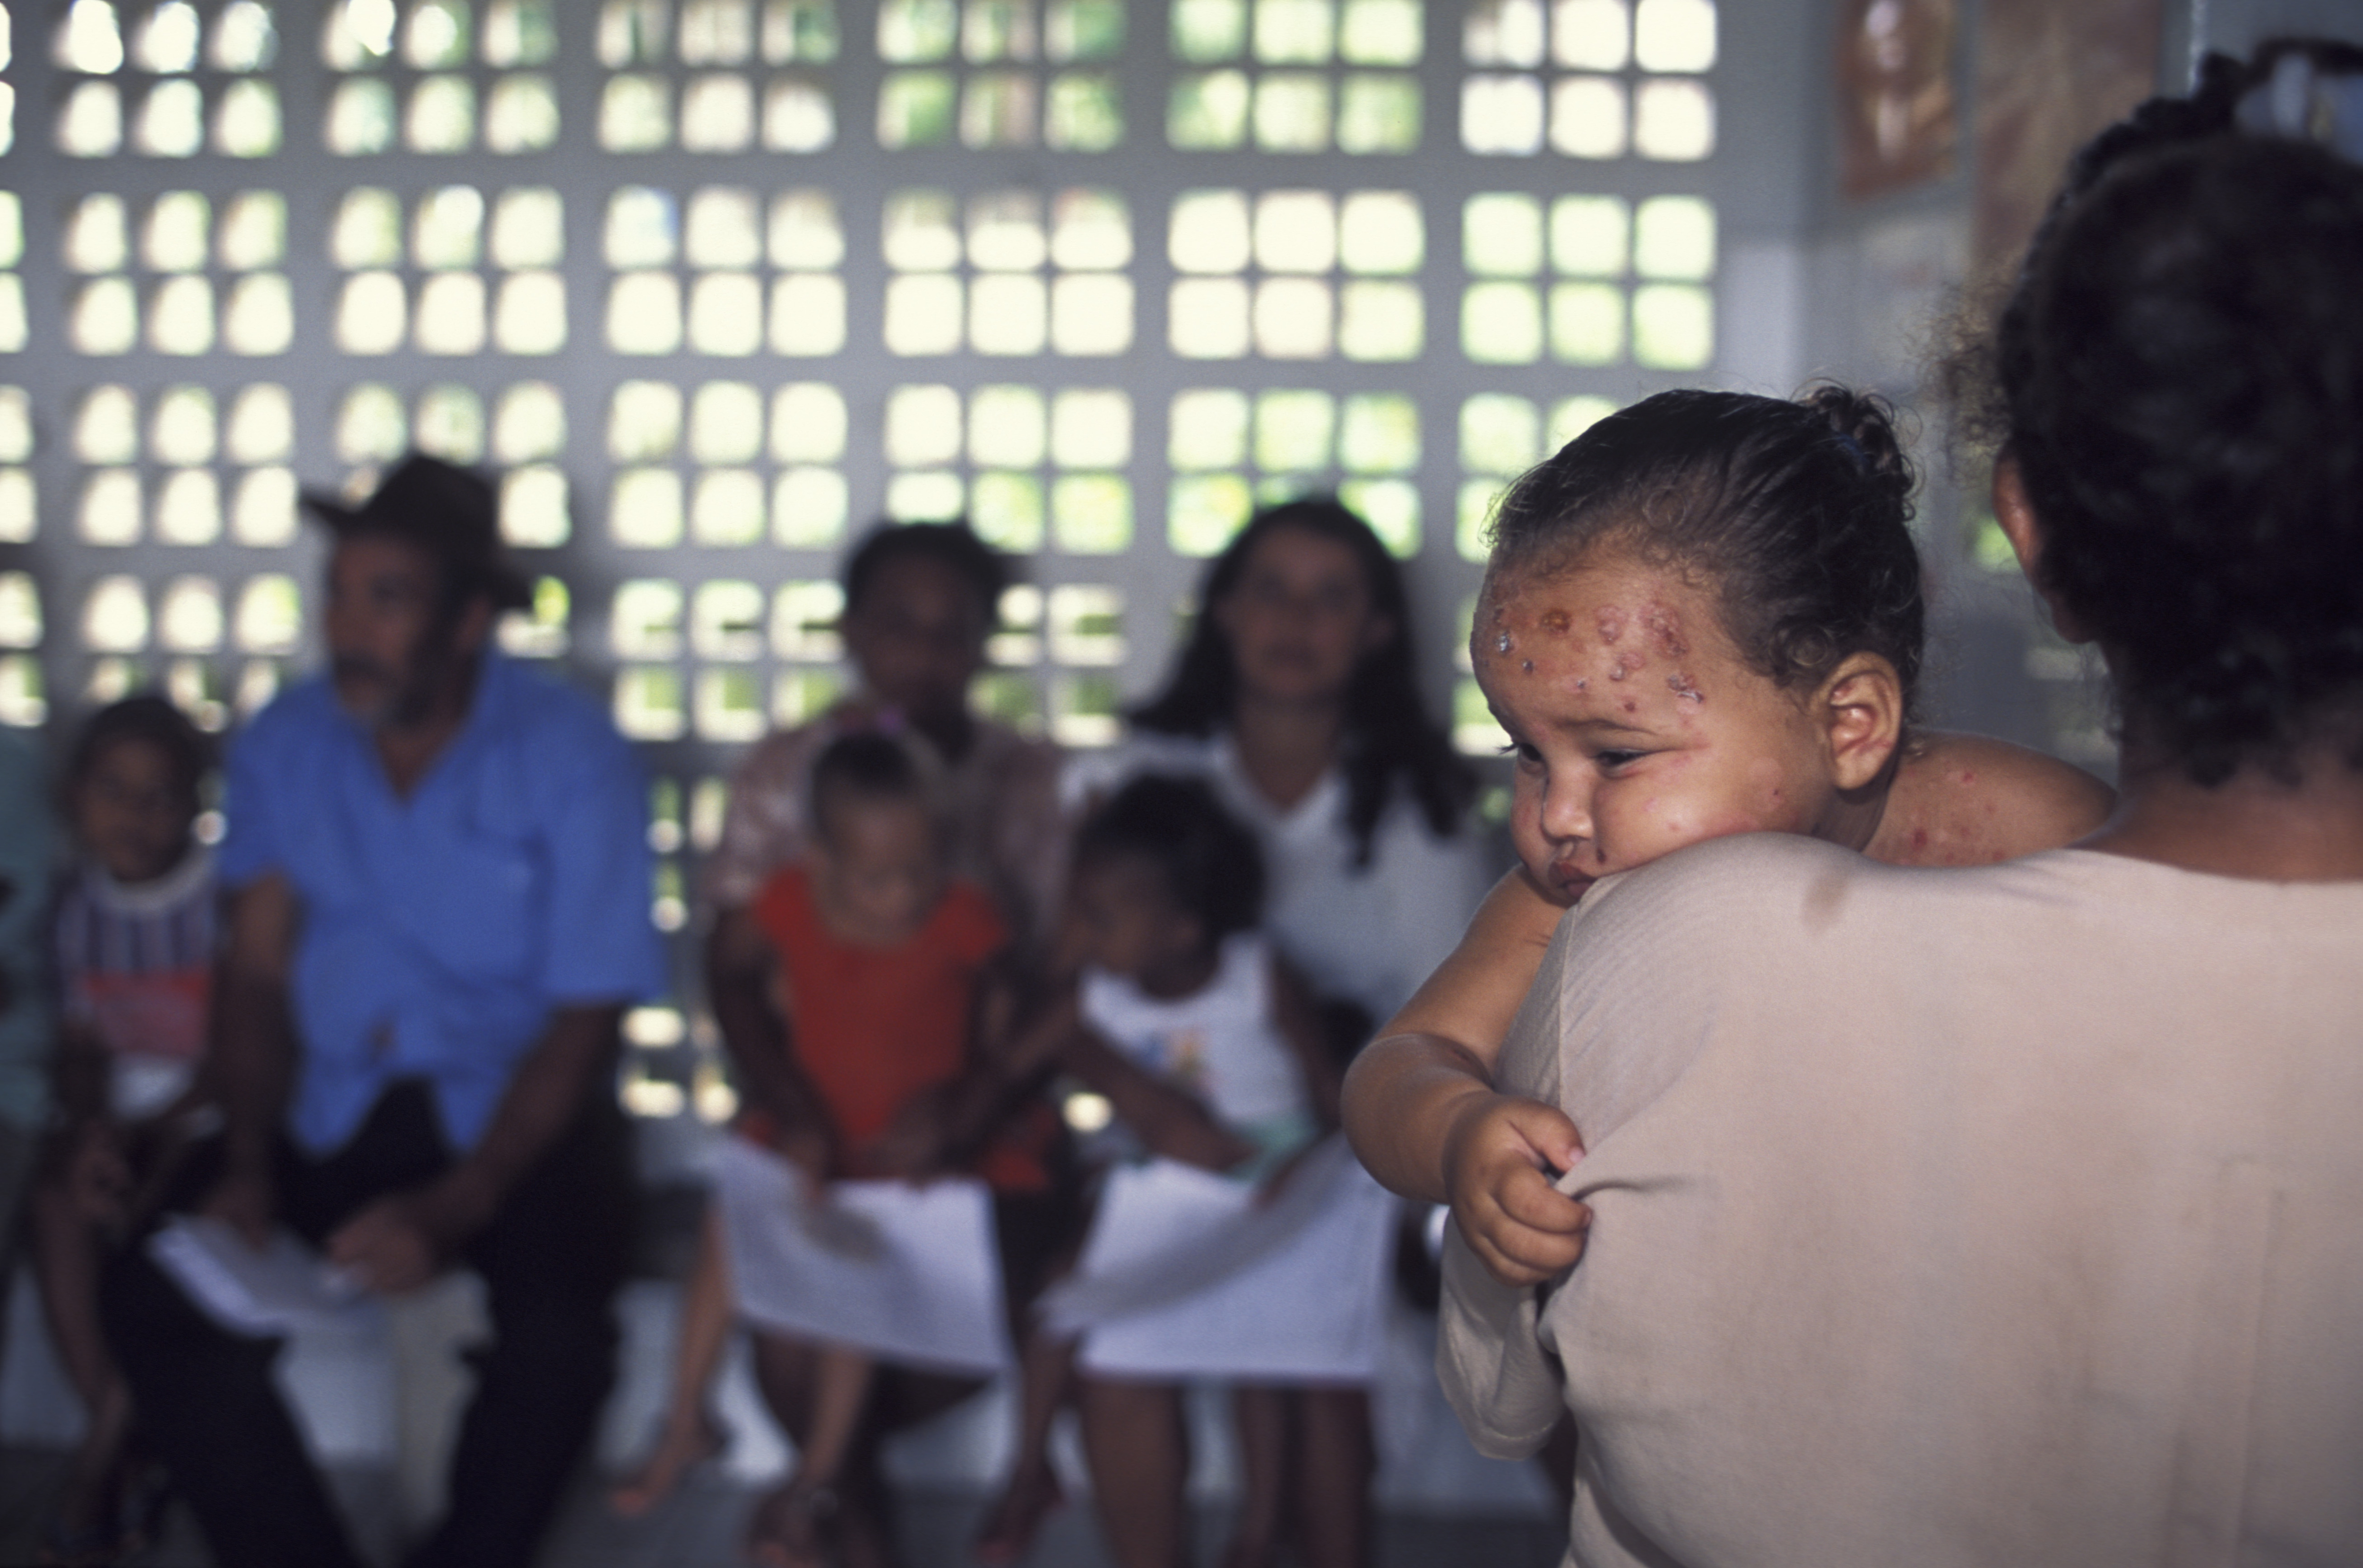 One-year old baby suffering from skin ulcers on face waits